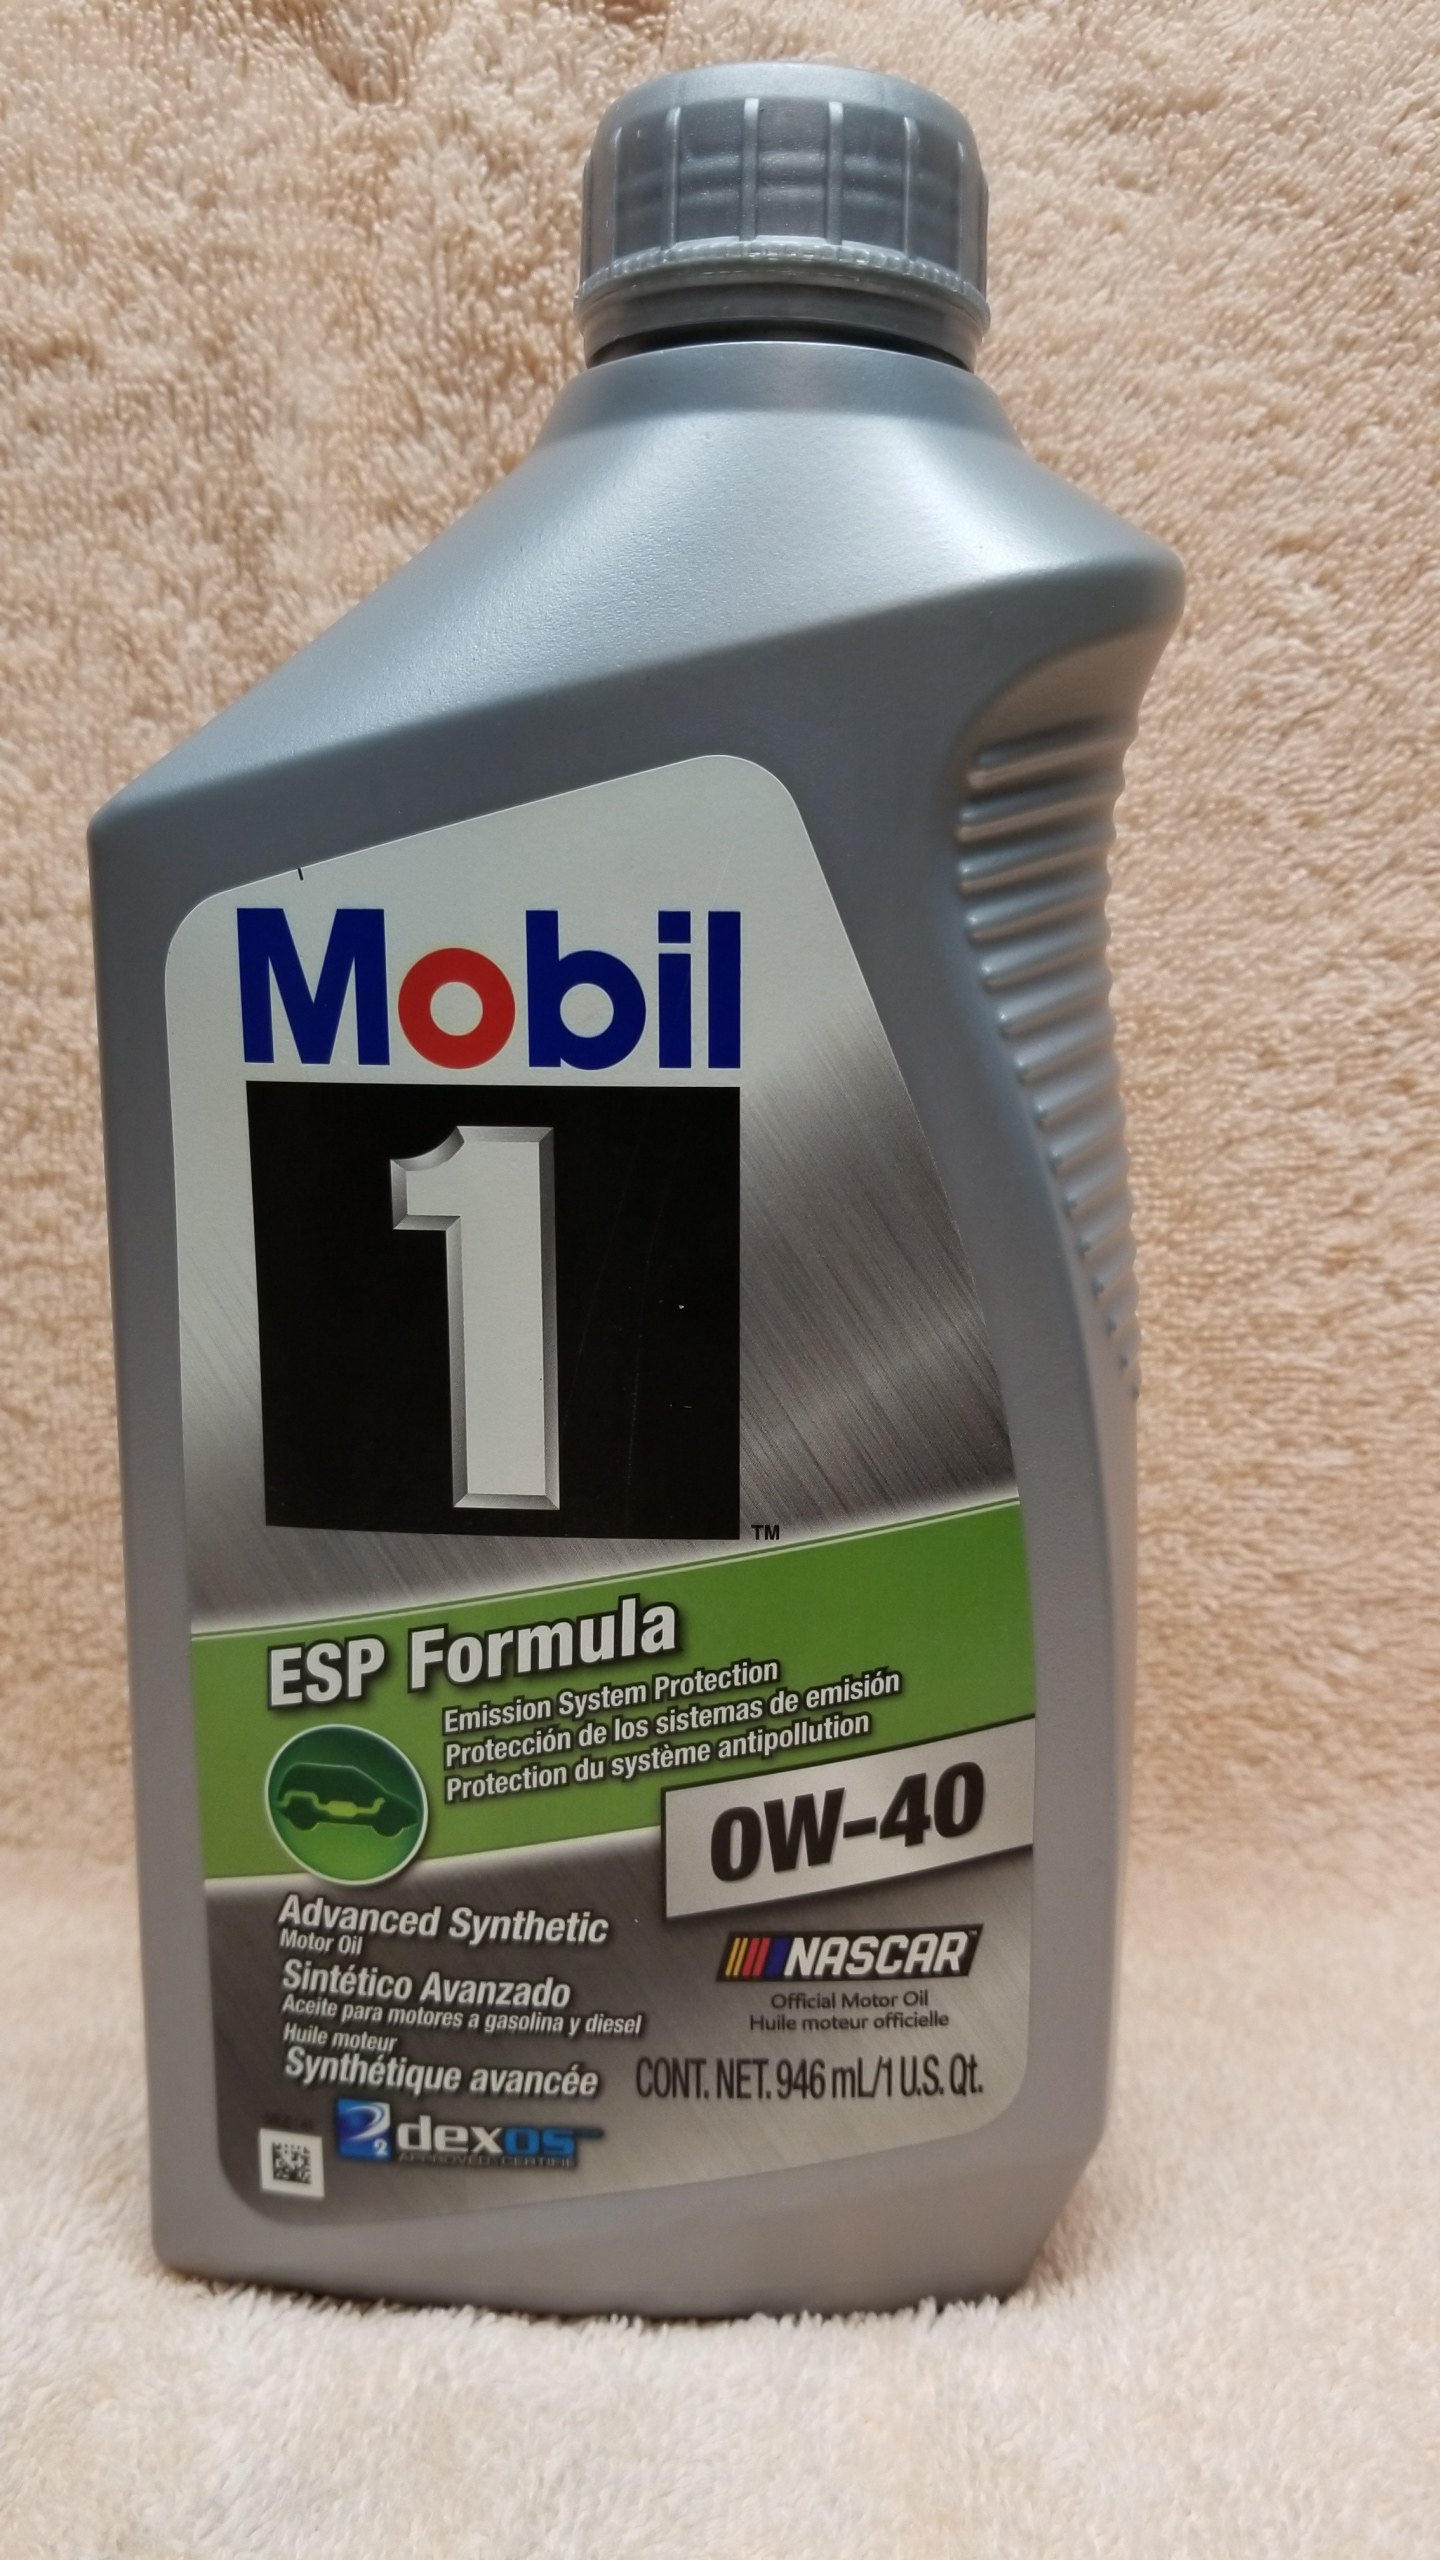 Mobil 1 Oil Change >> Part # for the new Dexos 0W-40 oil